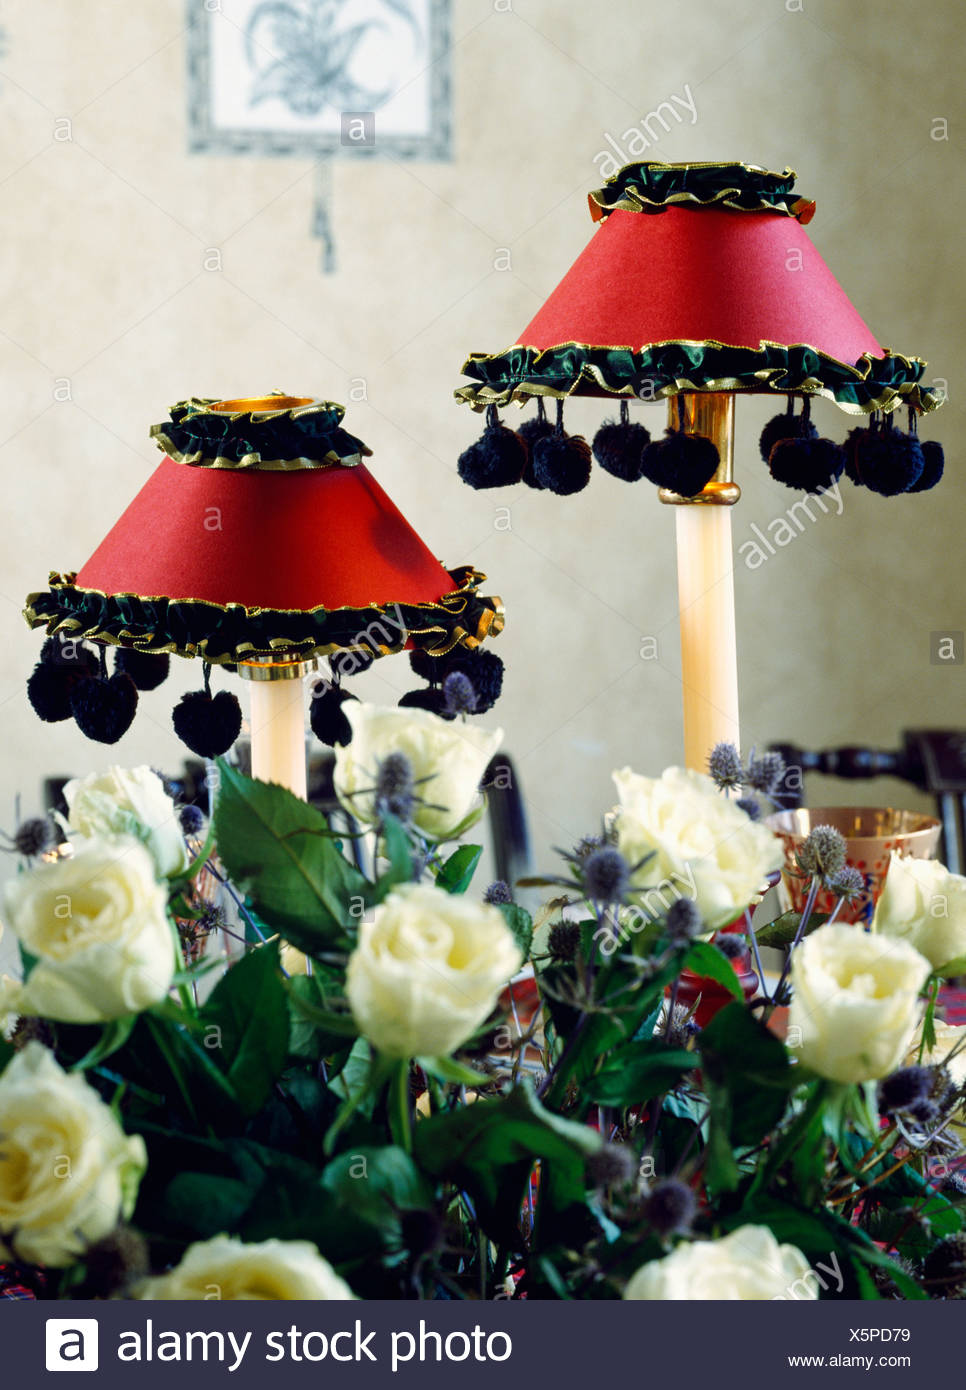 Close Up Of White Roses In Front Of Lamps With Red Silk Shades